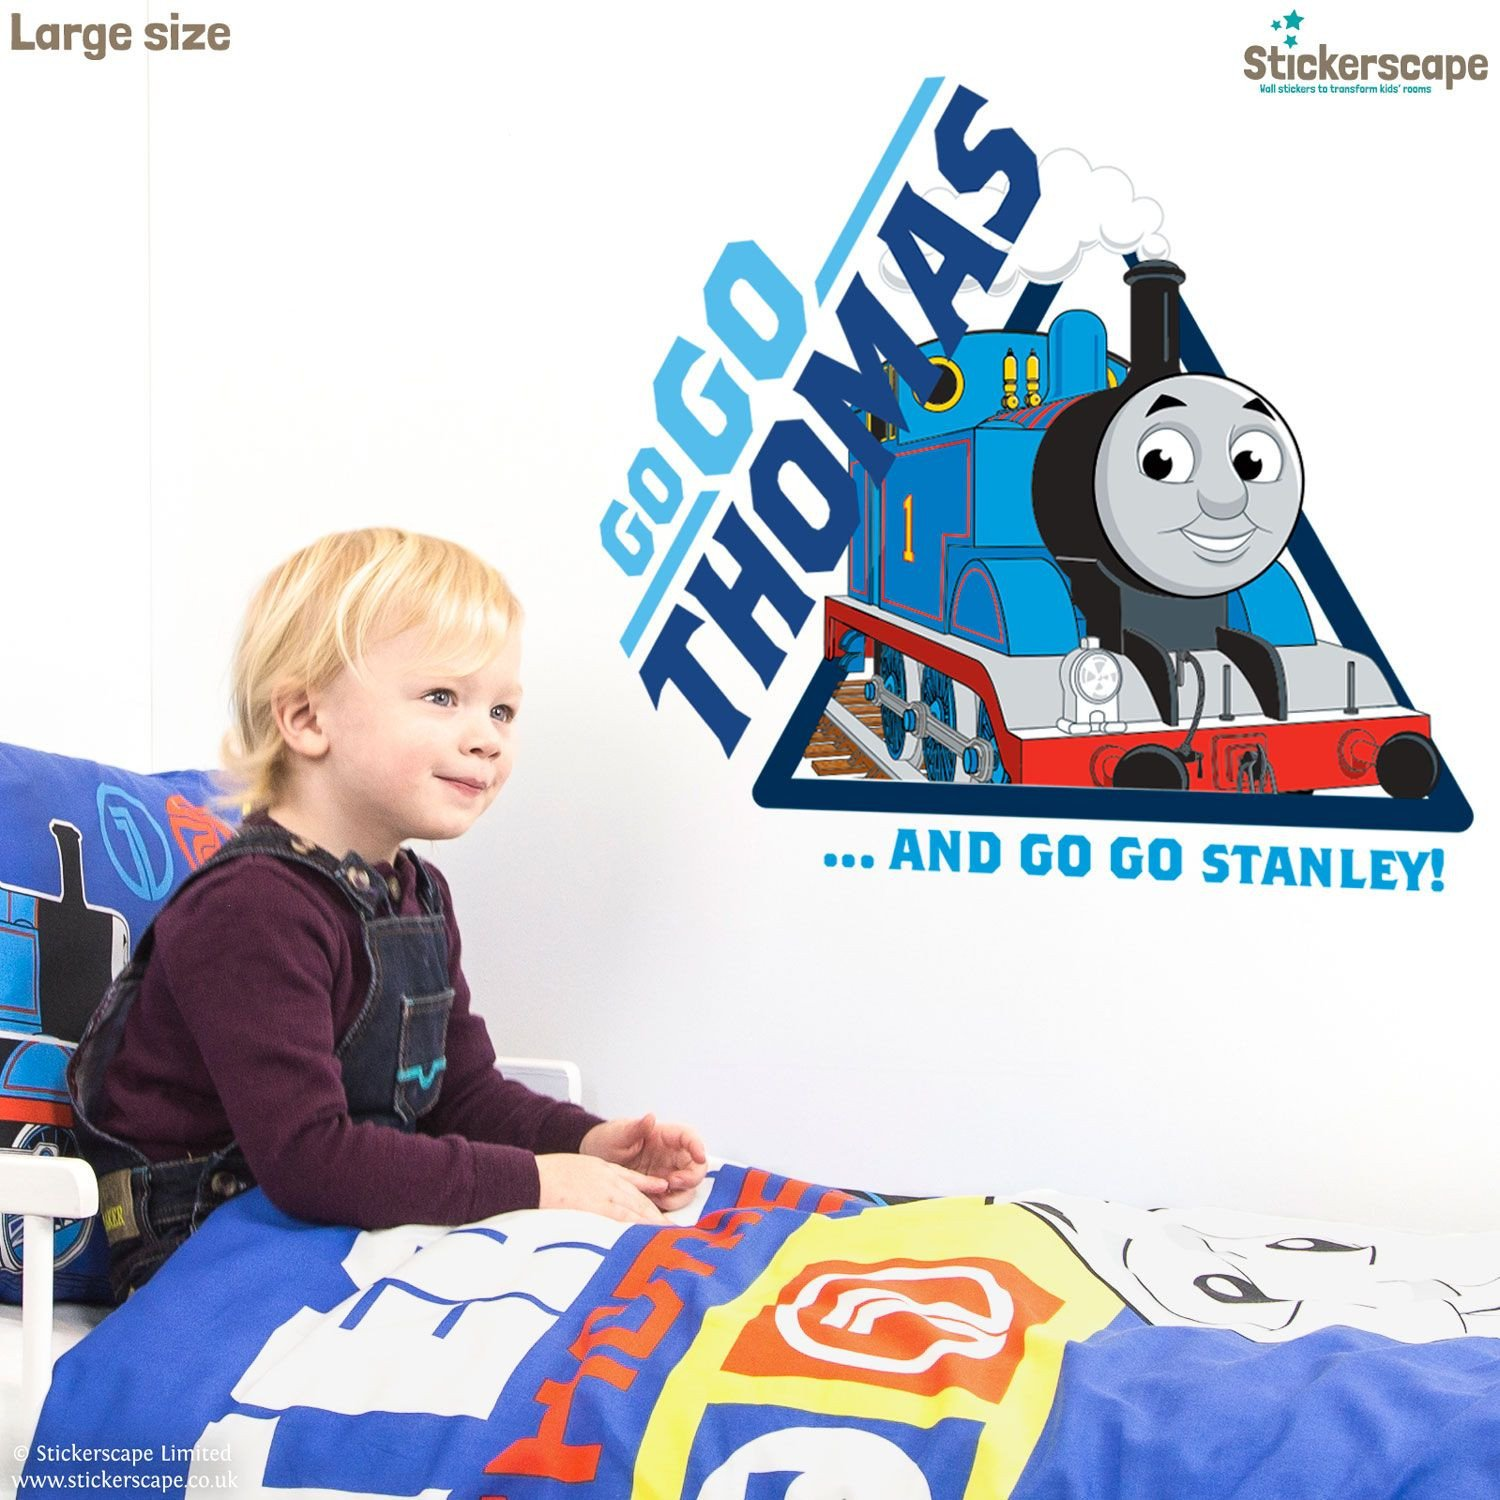 Thomas the Train Bedroom Decor Inspirational Stickerscape S Official Thomas the Tank Engine Wall Sticker